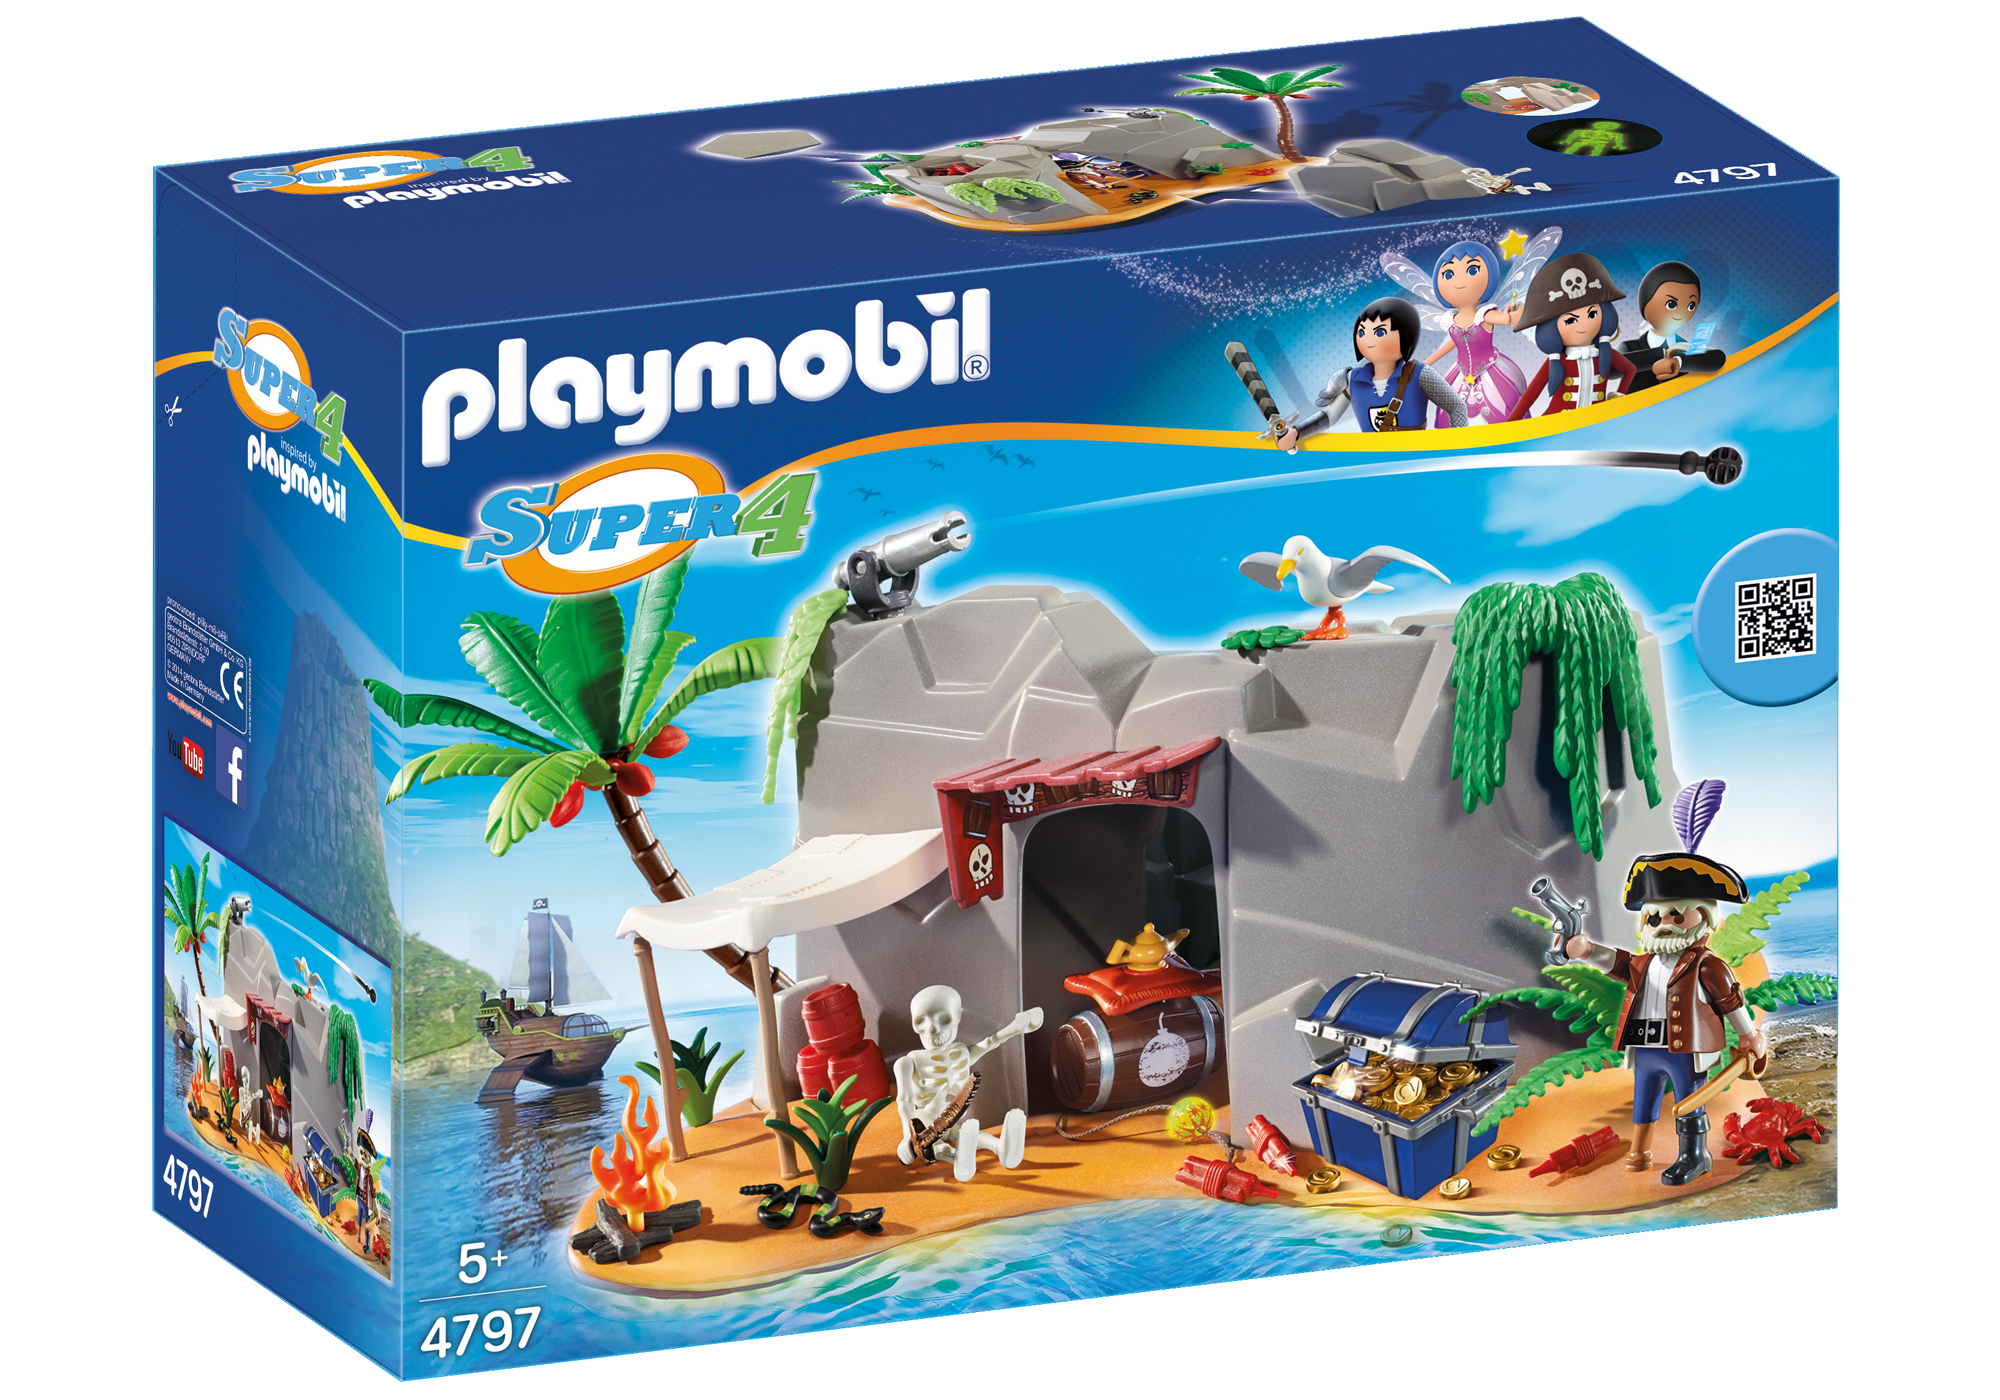 http://media.playmobil.com/i/playmobil/4797_product_box_front